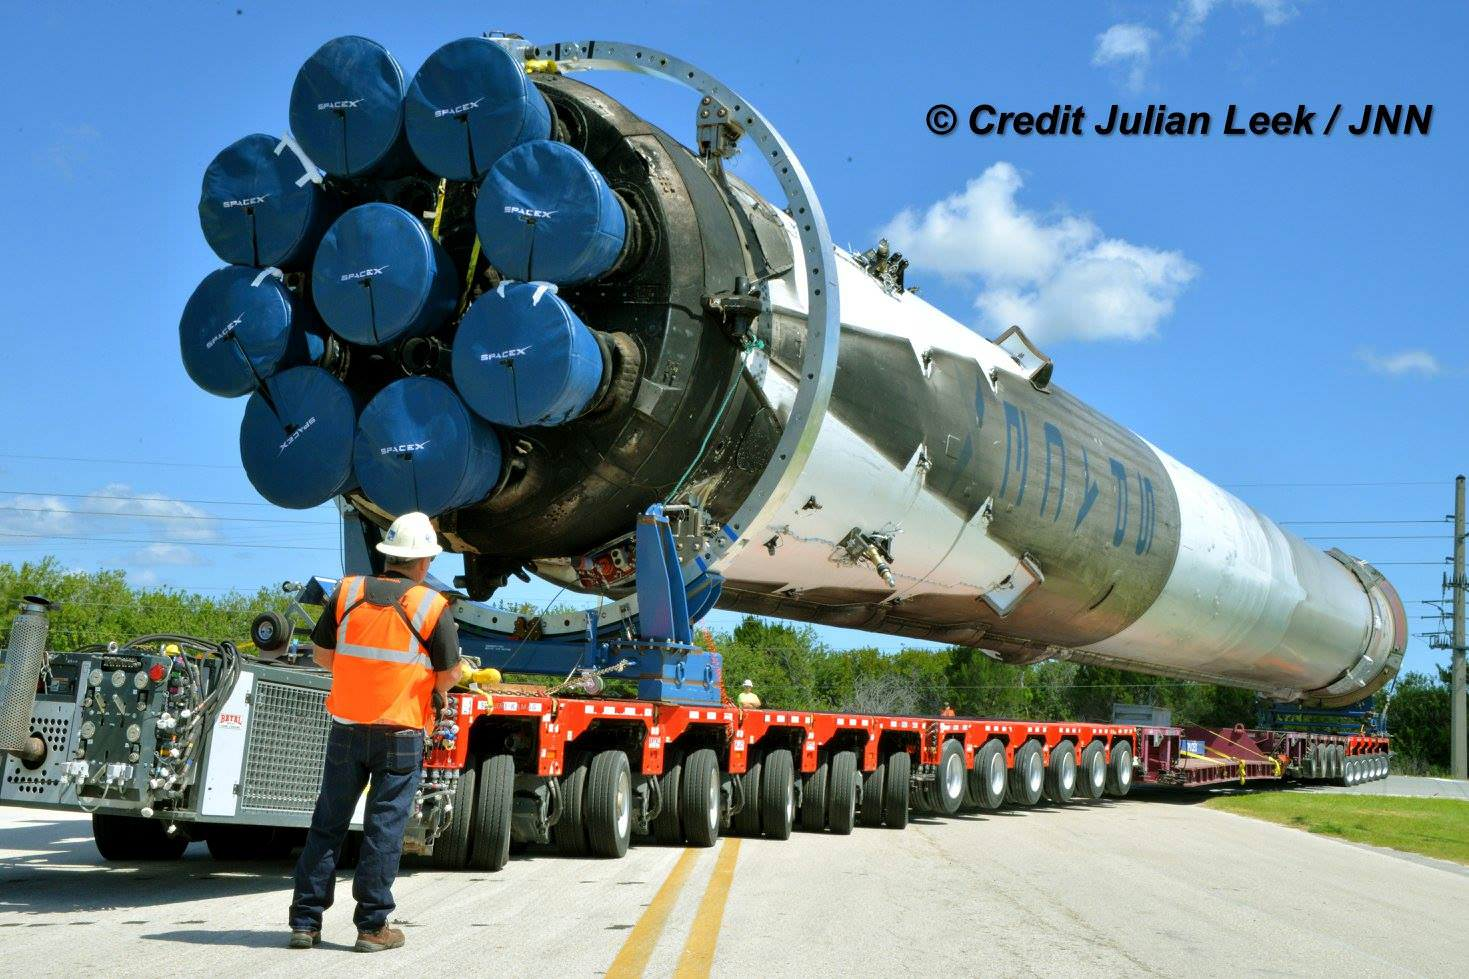 Up close view of base of recovered SpaceX Falcon 9 first stage rocket powered by 9 Merlin 1 D engines being transported horizontally back to SpaceX processing hanger at the Kennedy Space Center from Port Canaveral, Florida storage and processing facility on April 19, 2016. Credit: Julian Leek